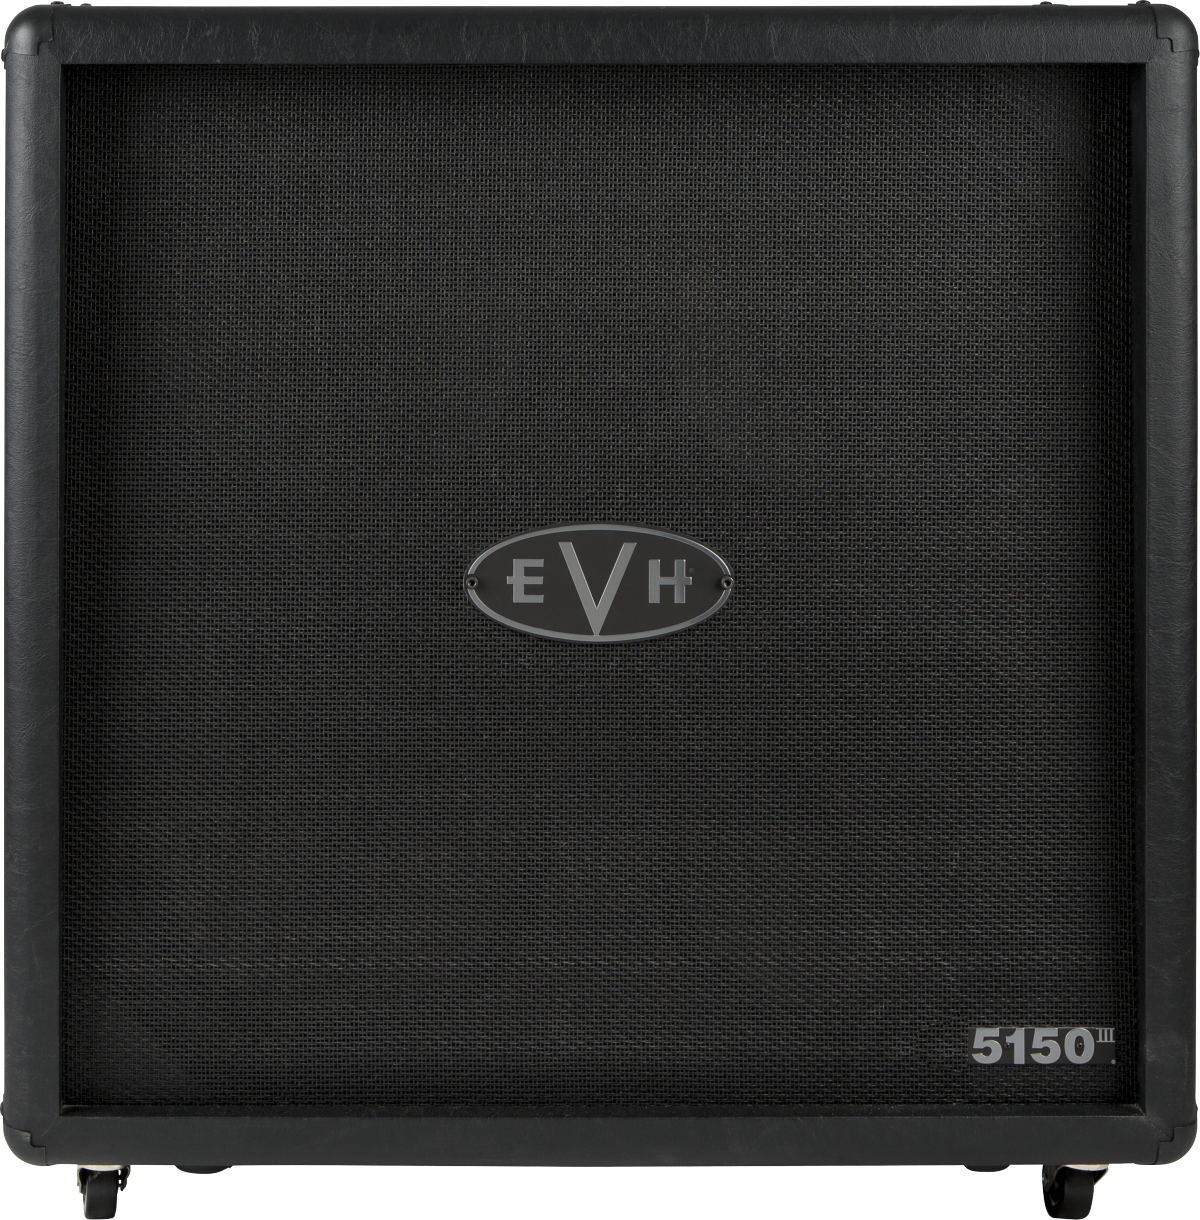 5150III® 100S 4 x12 Cabinet, Stealth Black